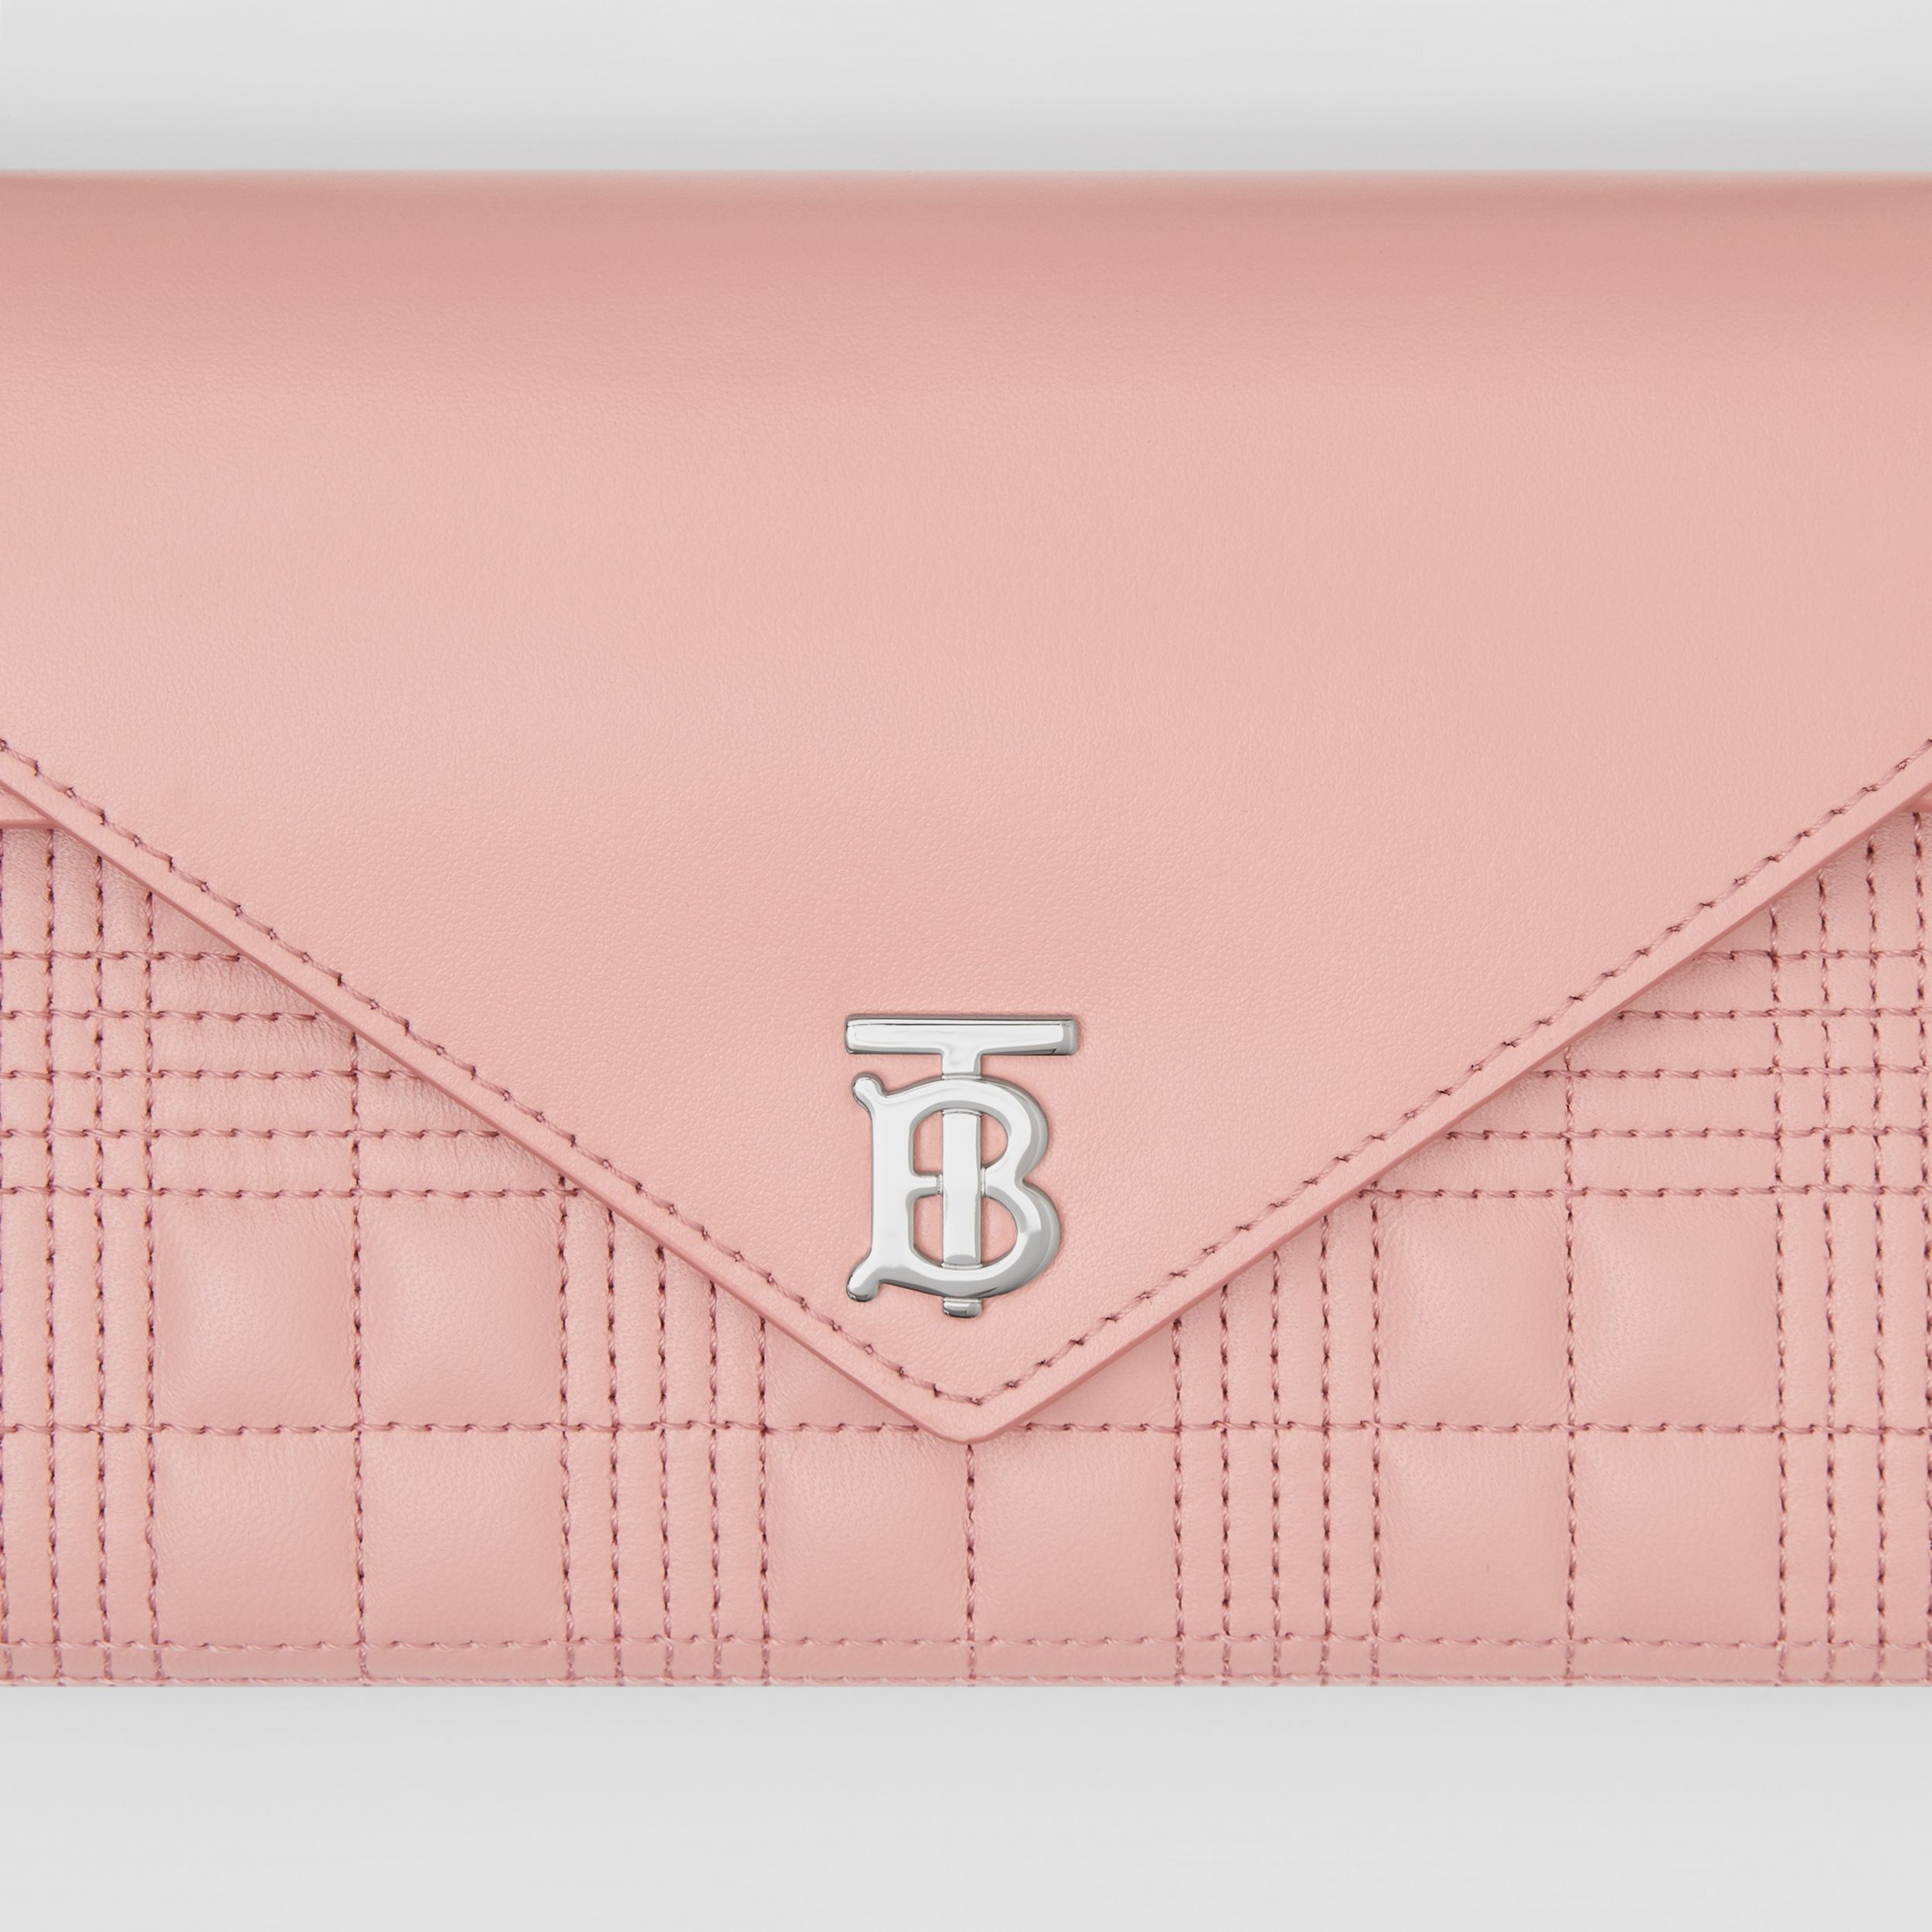 Quilted Lambskin Wallet with Detachable Chain Strap in Blush Pink - Women | Burberry - 2